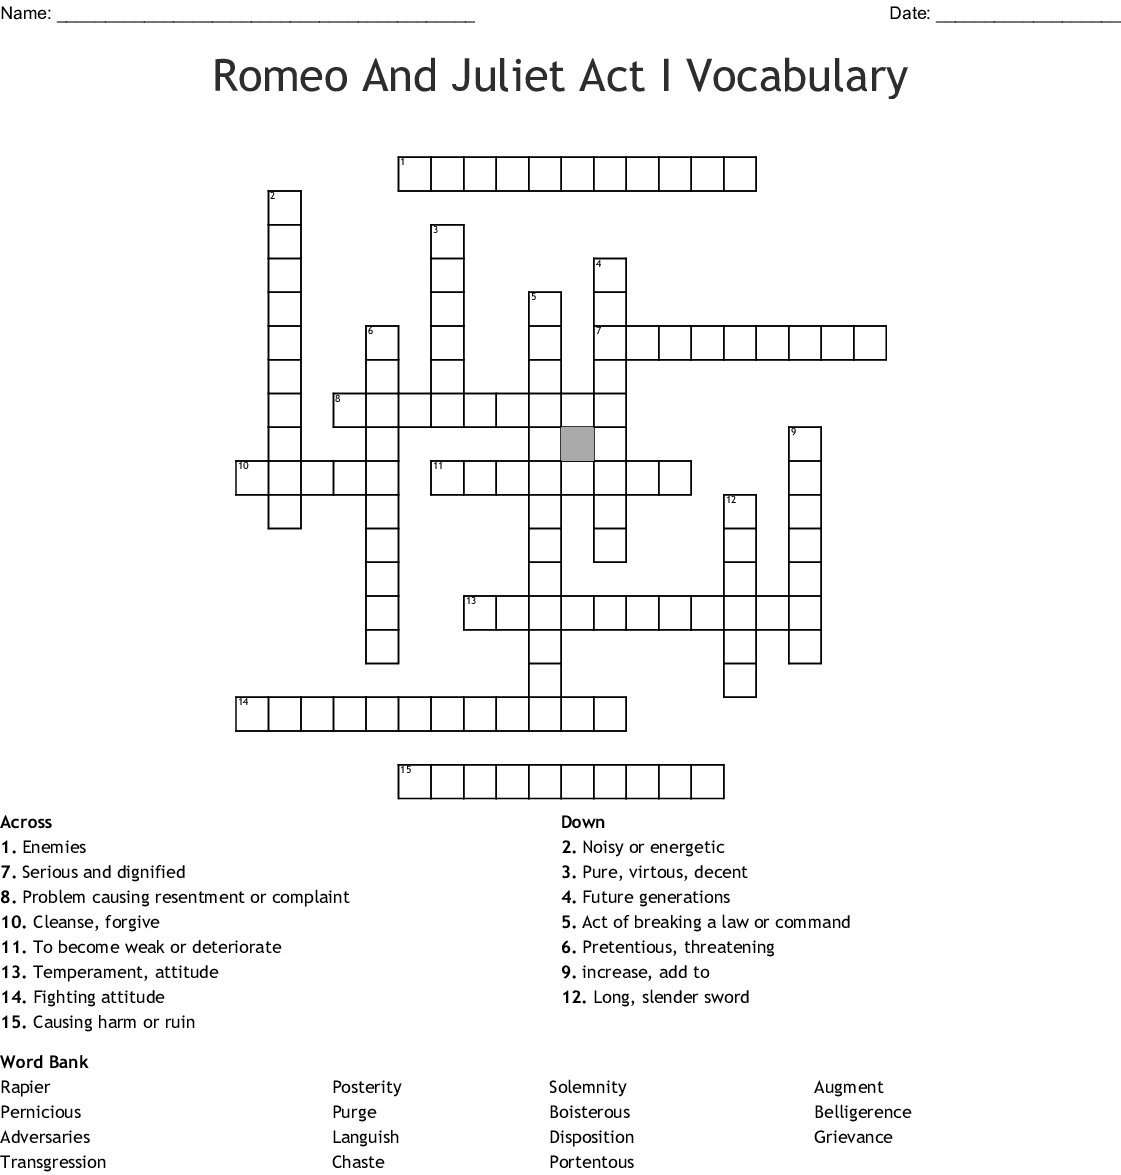 Romeo And Juliet Act 1 Vocabulary Worksheet Answers